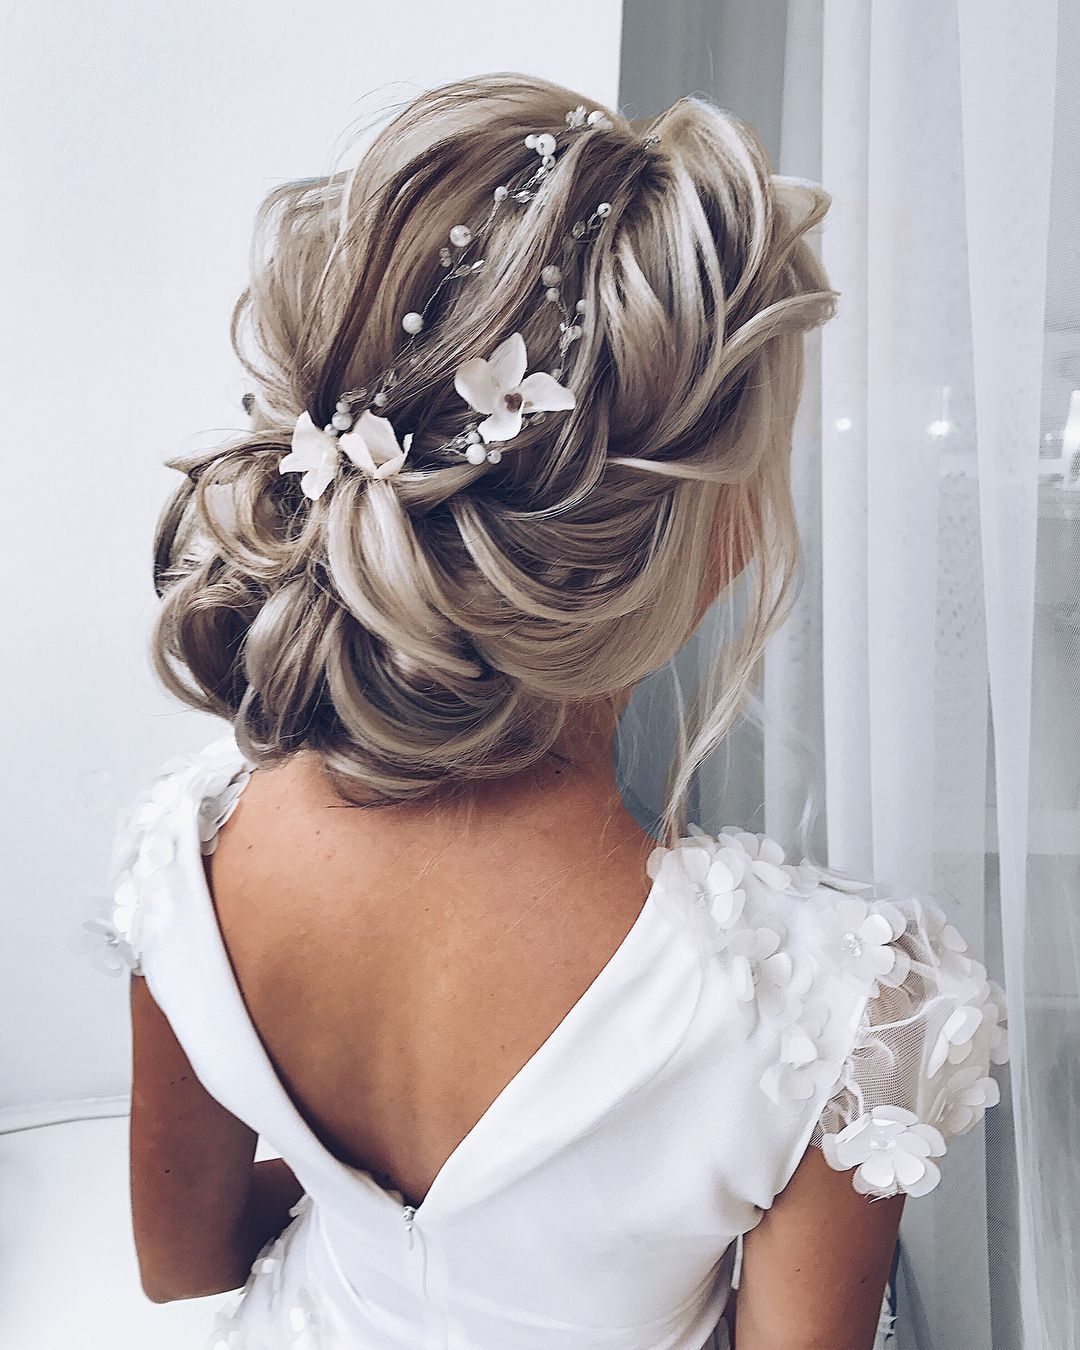 Wedding Hair Style Video: Long Wedding Hairstyles And Updos From @ellen_orlovskay